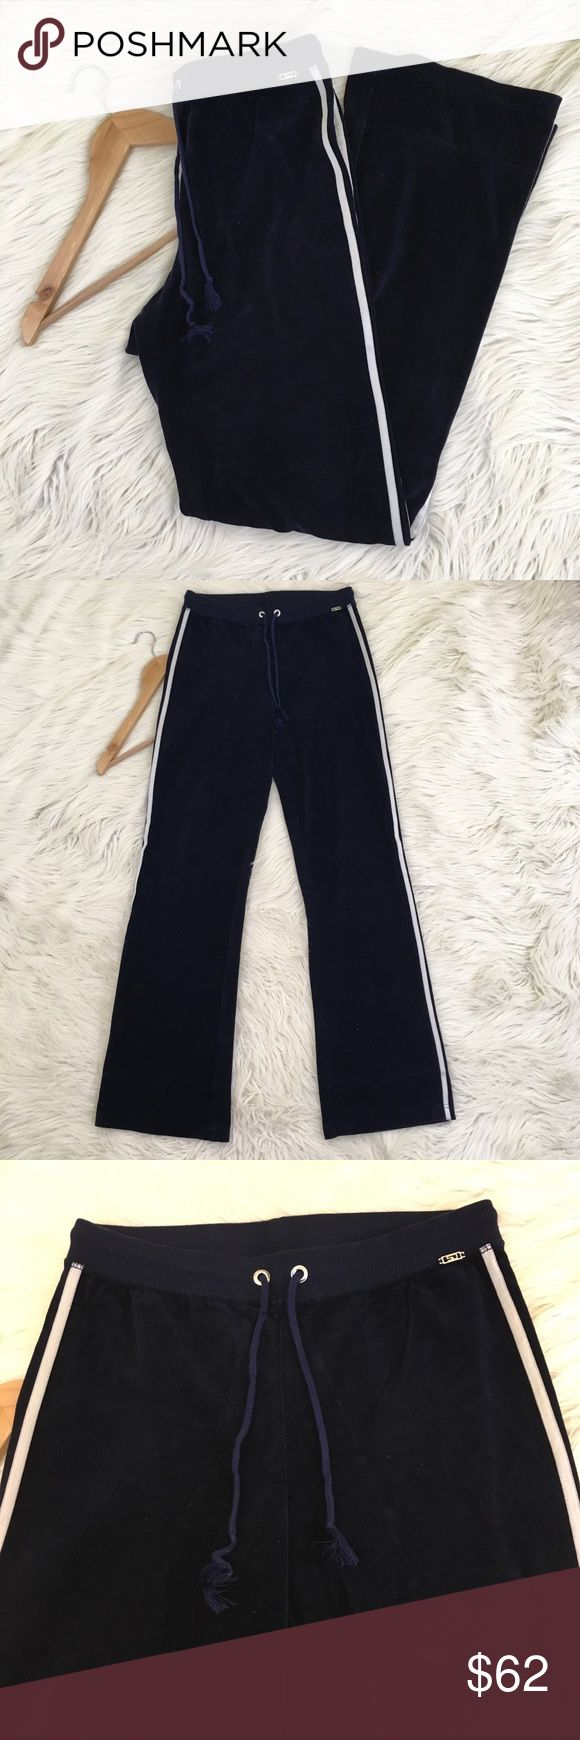 St. John Sport Navy Blue Velour Track Pants St. John Sport Womens Small Velour Track Pants • Navy Blue • Drawstring waist • 2 white stripes down legs • excellent condition no flaws  Length: Waist flat:  📌NO lowball offers 📌NO modeling 📌NO trades  Come check out the rest of my closet! I have various brands and ALL different sizes ❤️ St. John Pants Track Pants & Joggers